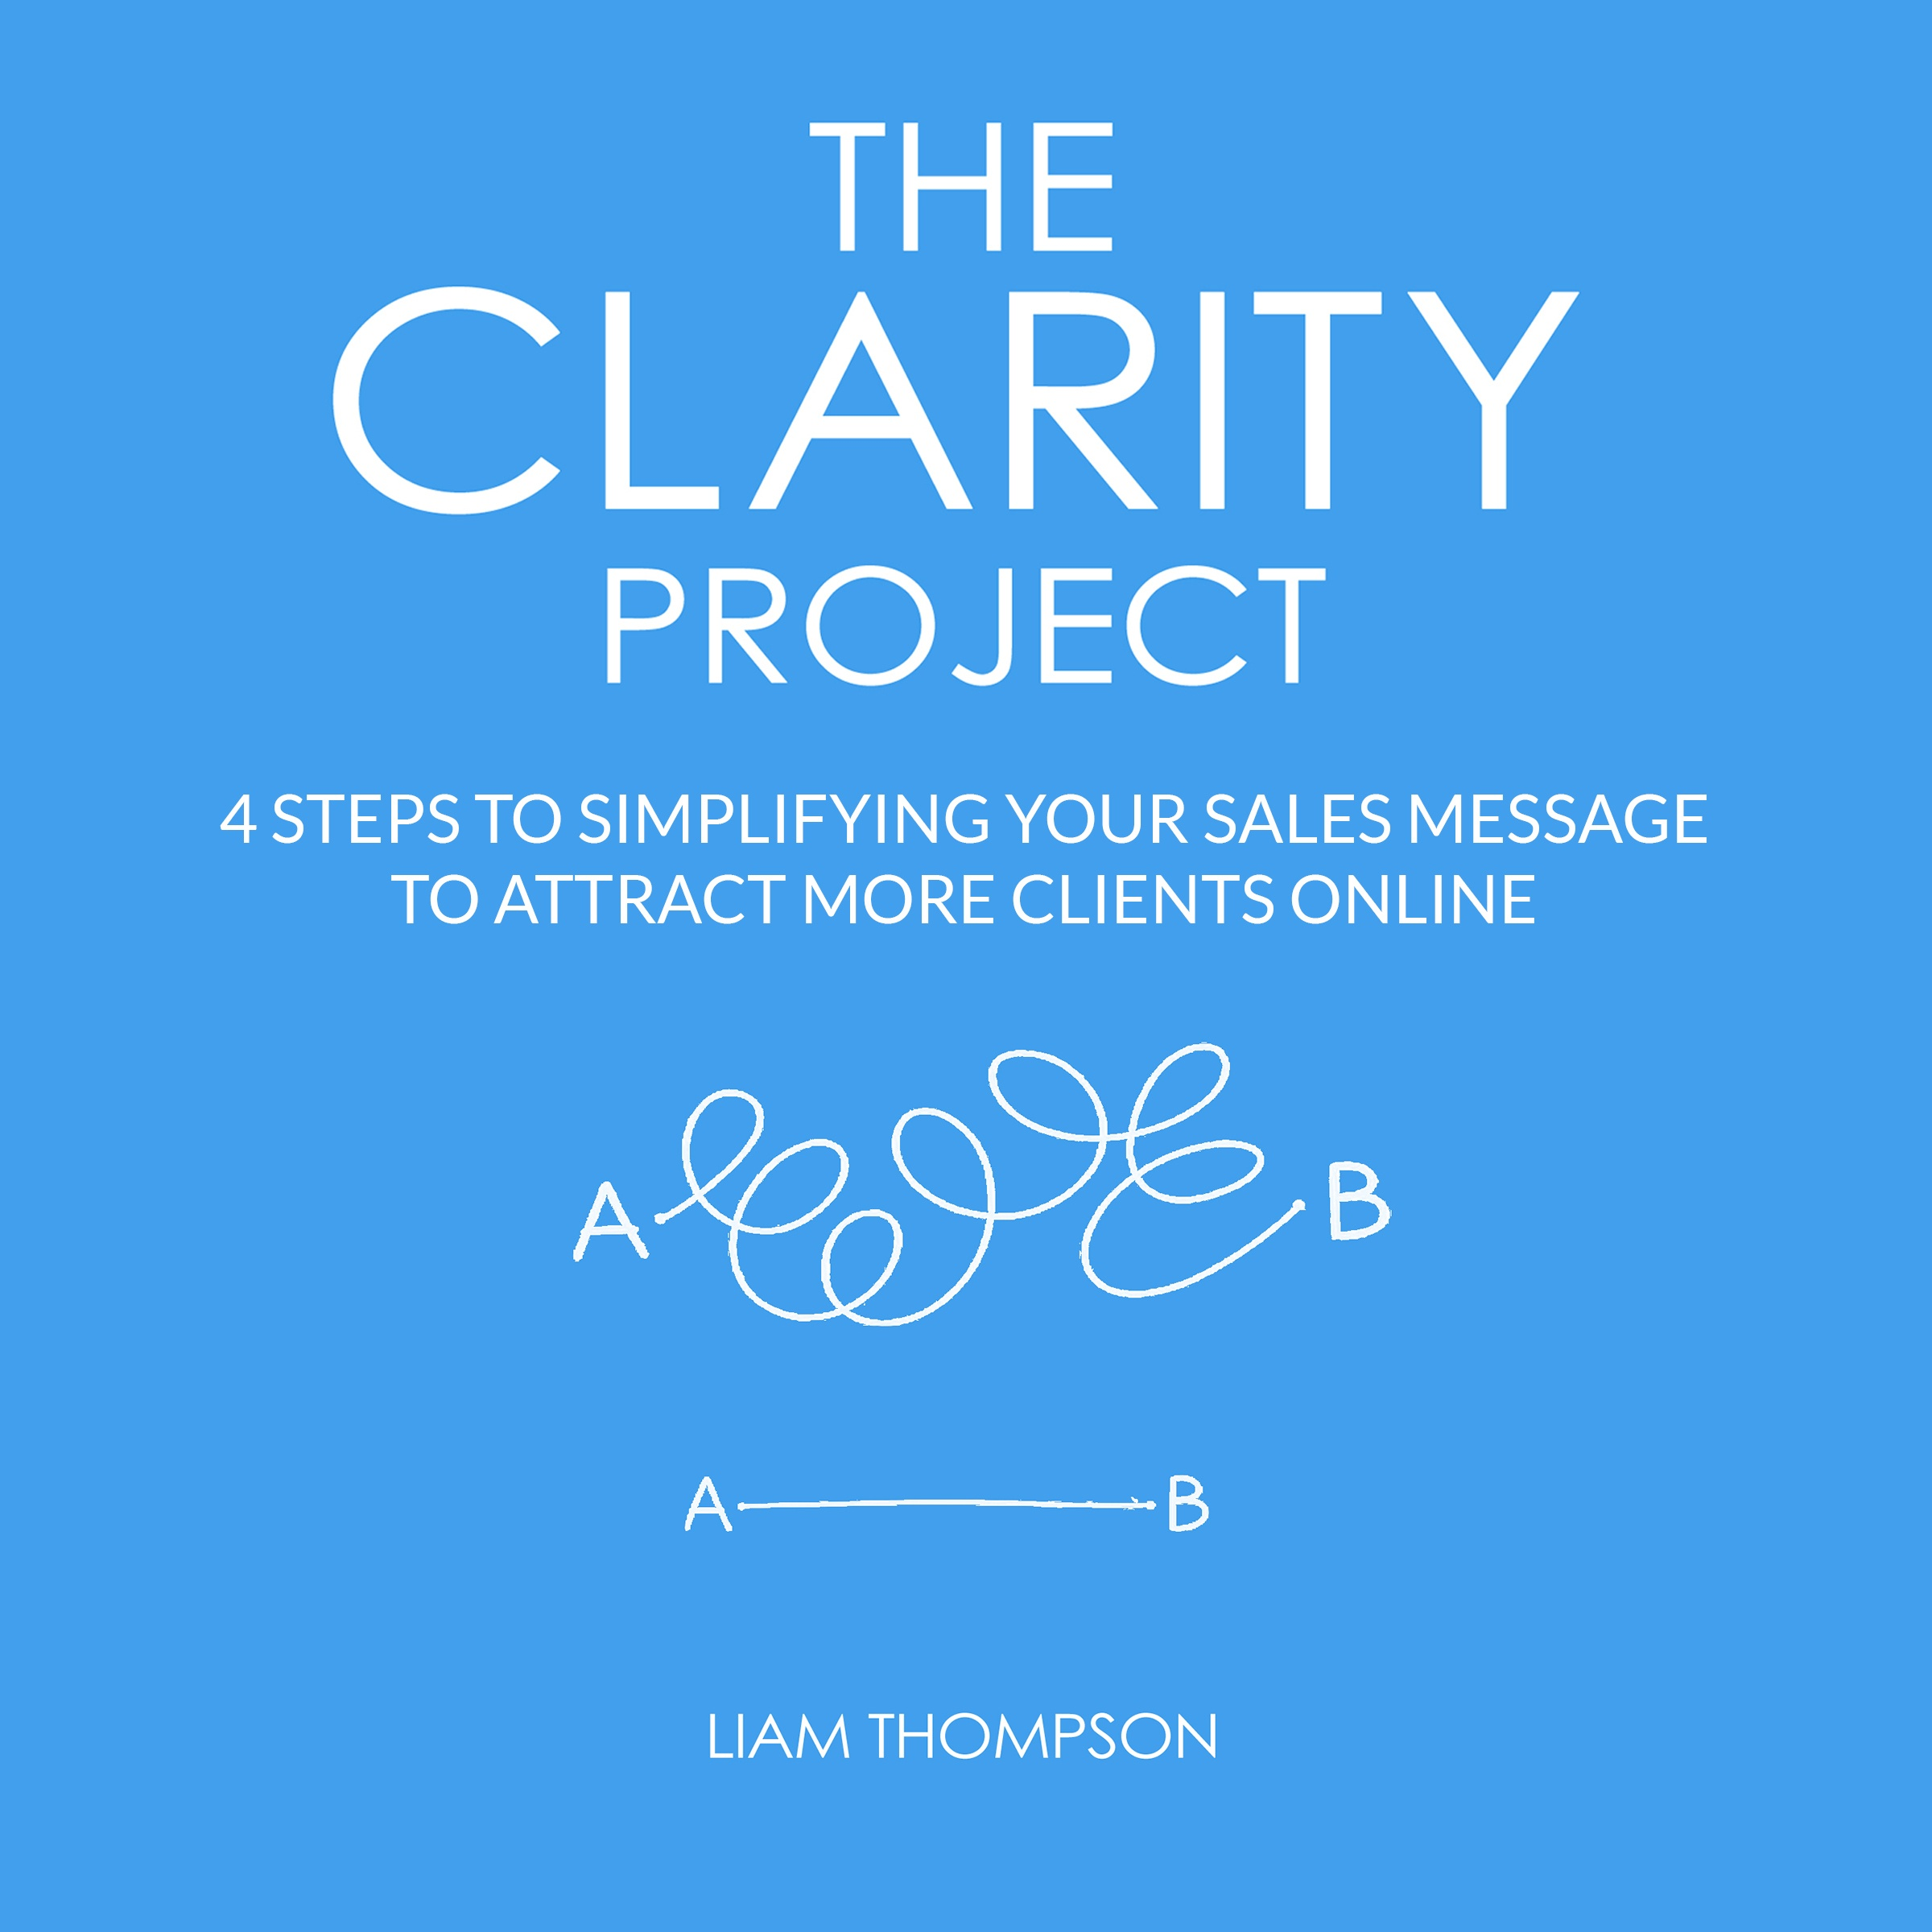 The Clarity Project by Liam Thompson